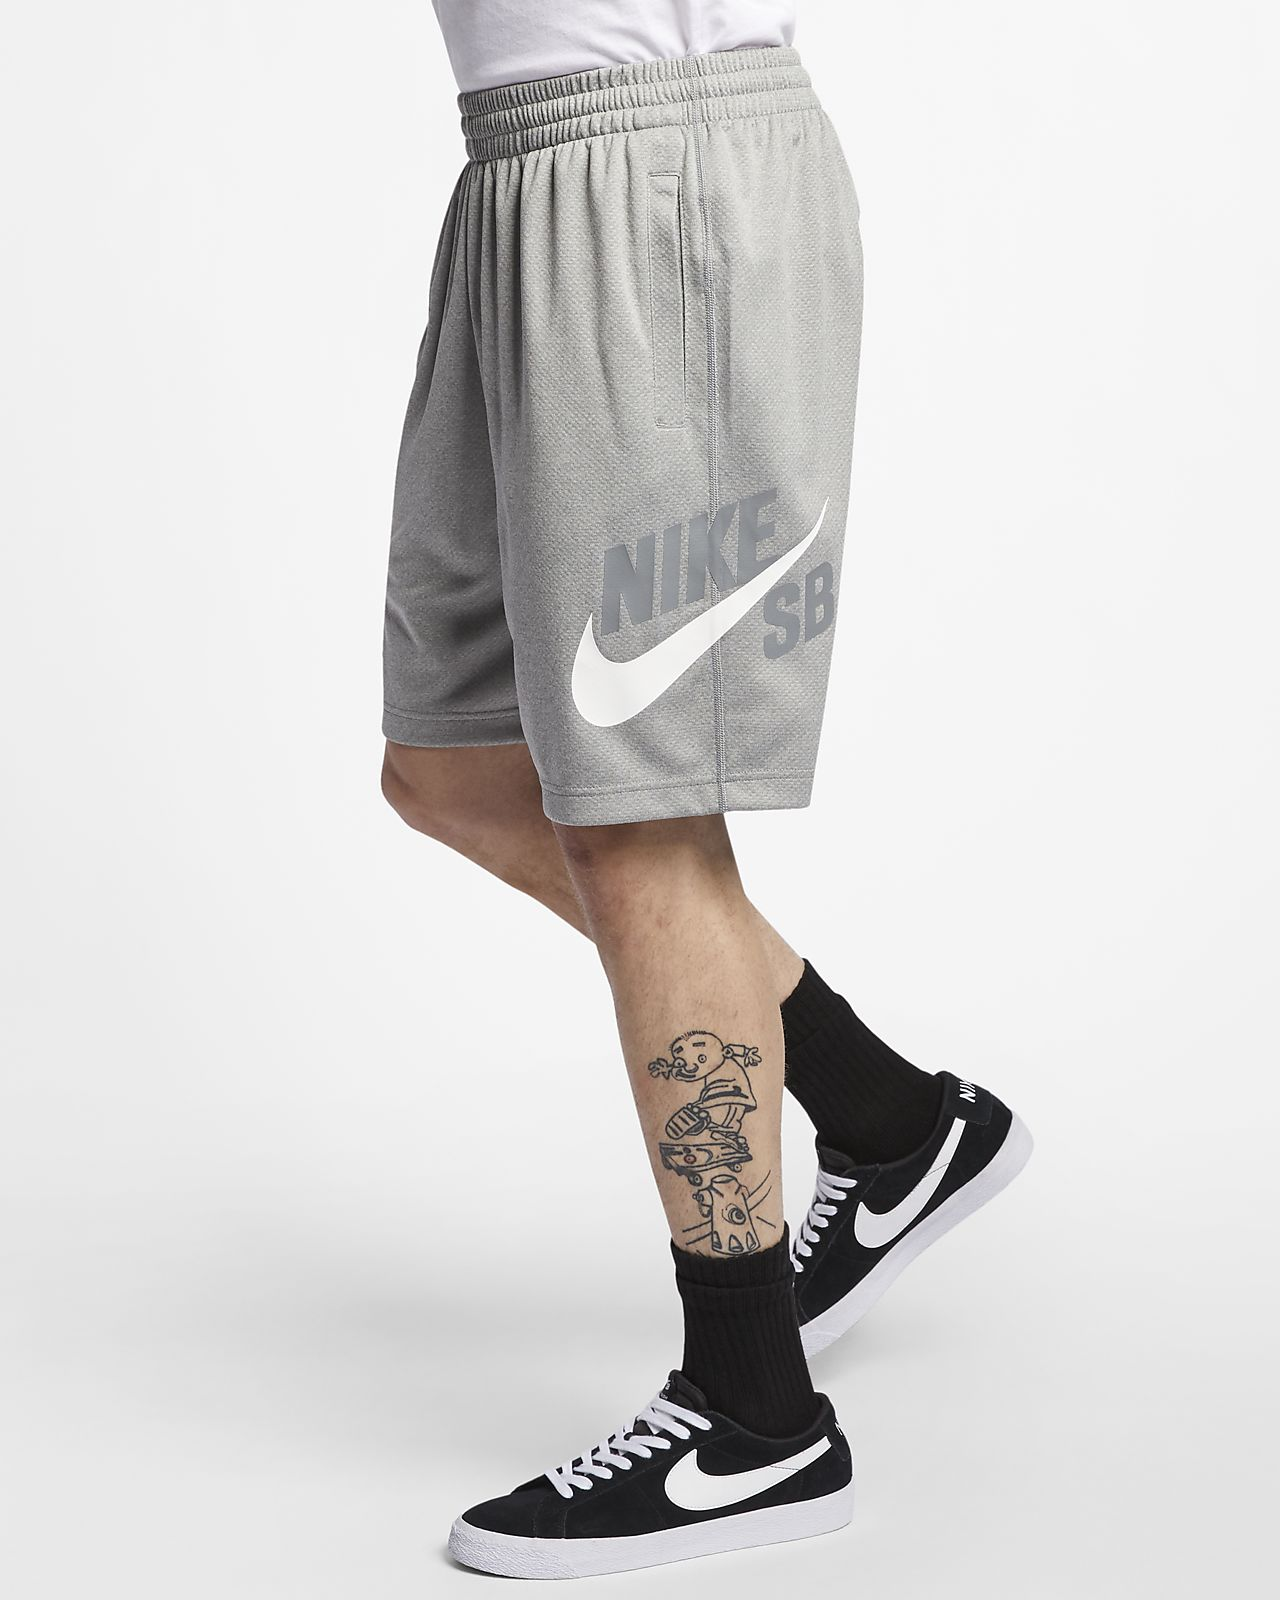 cdda13ea89 Nike SB Dri-FIT Sunday Men's Skate Shorts. Nike.com